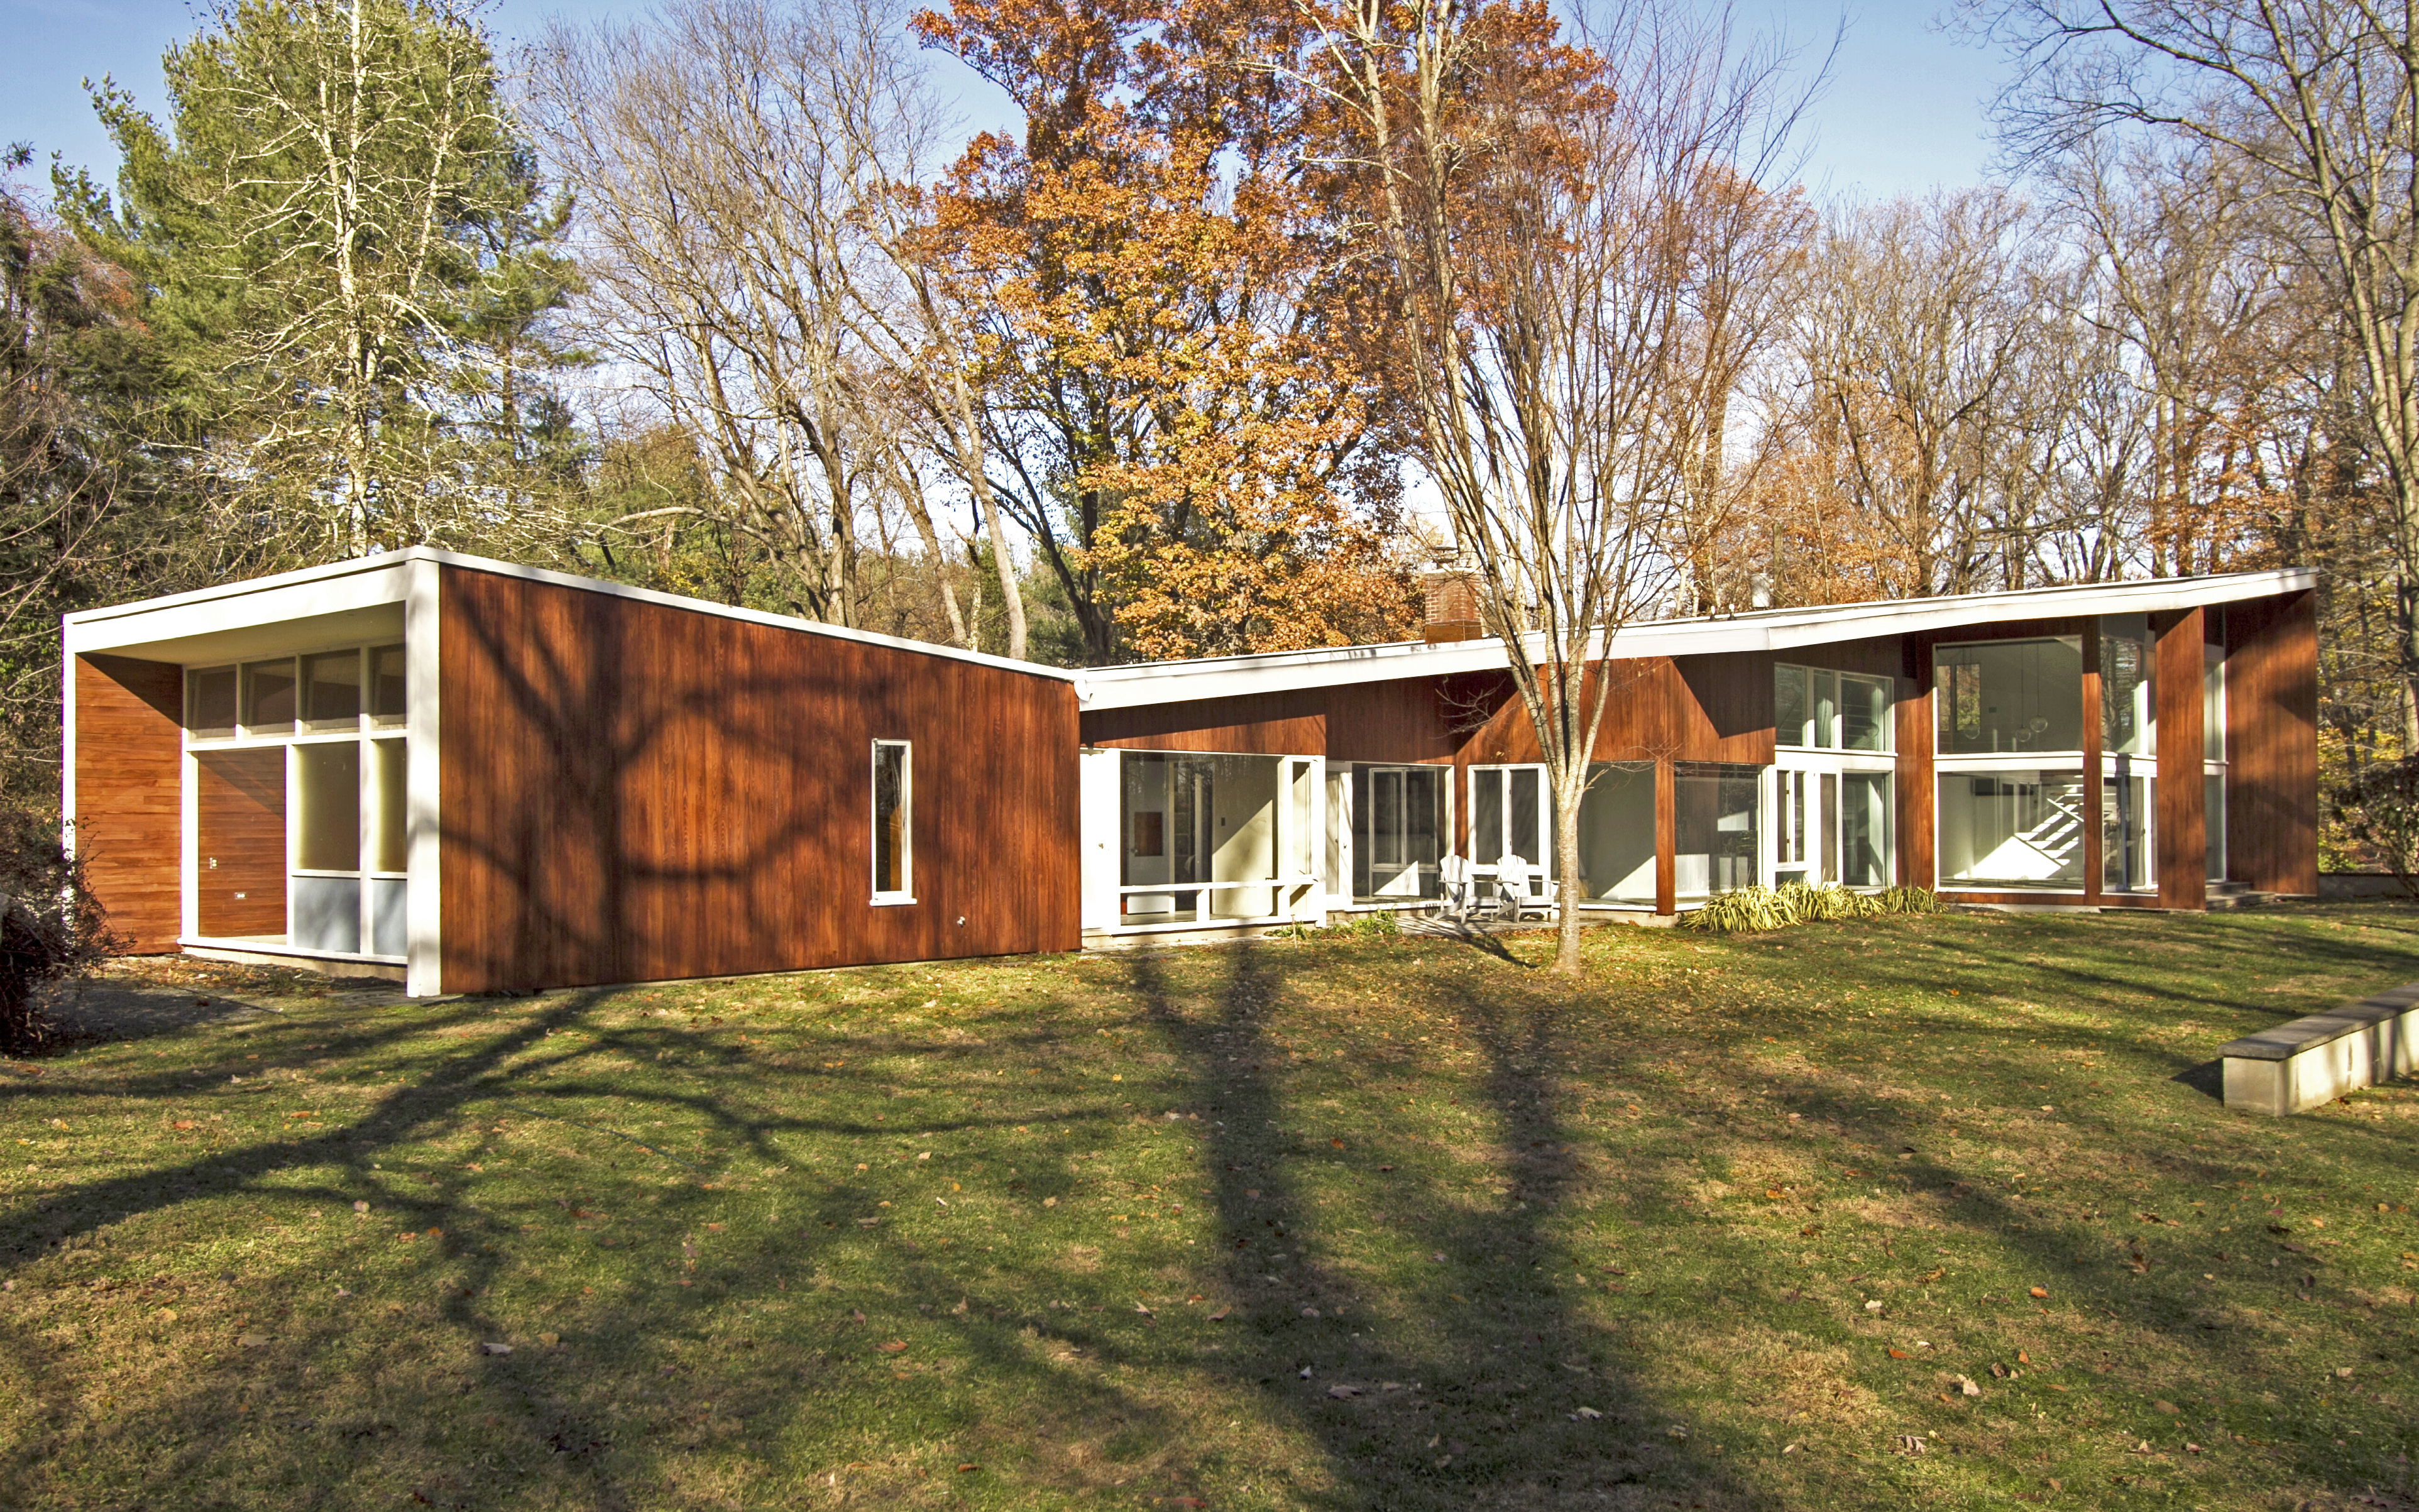 Marcel Breuer's 1950 Lauck House restored to its original glory